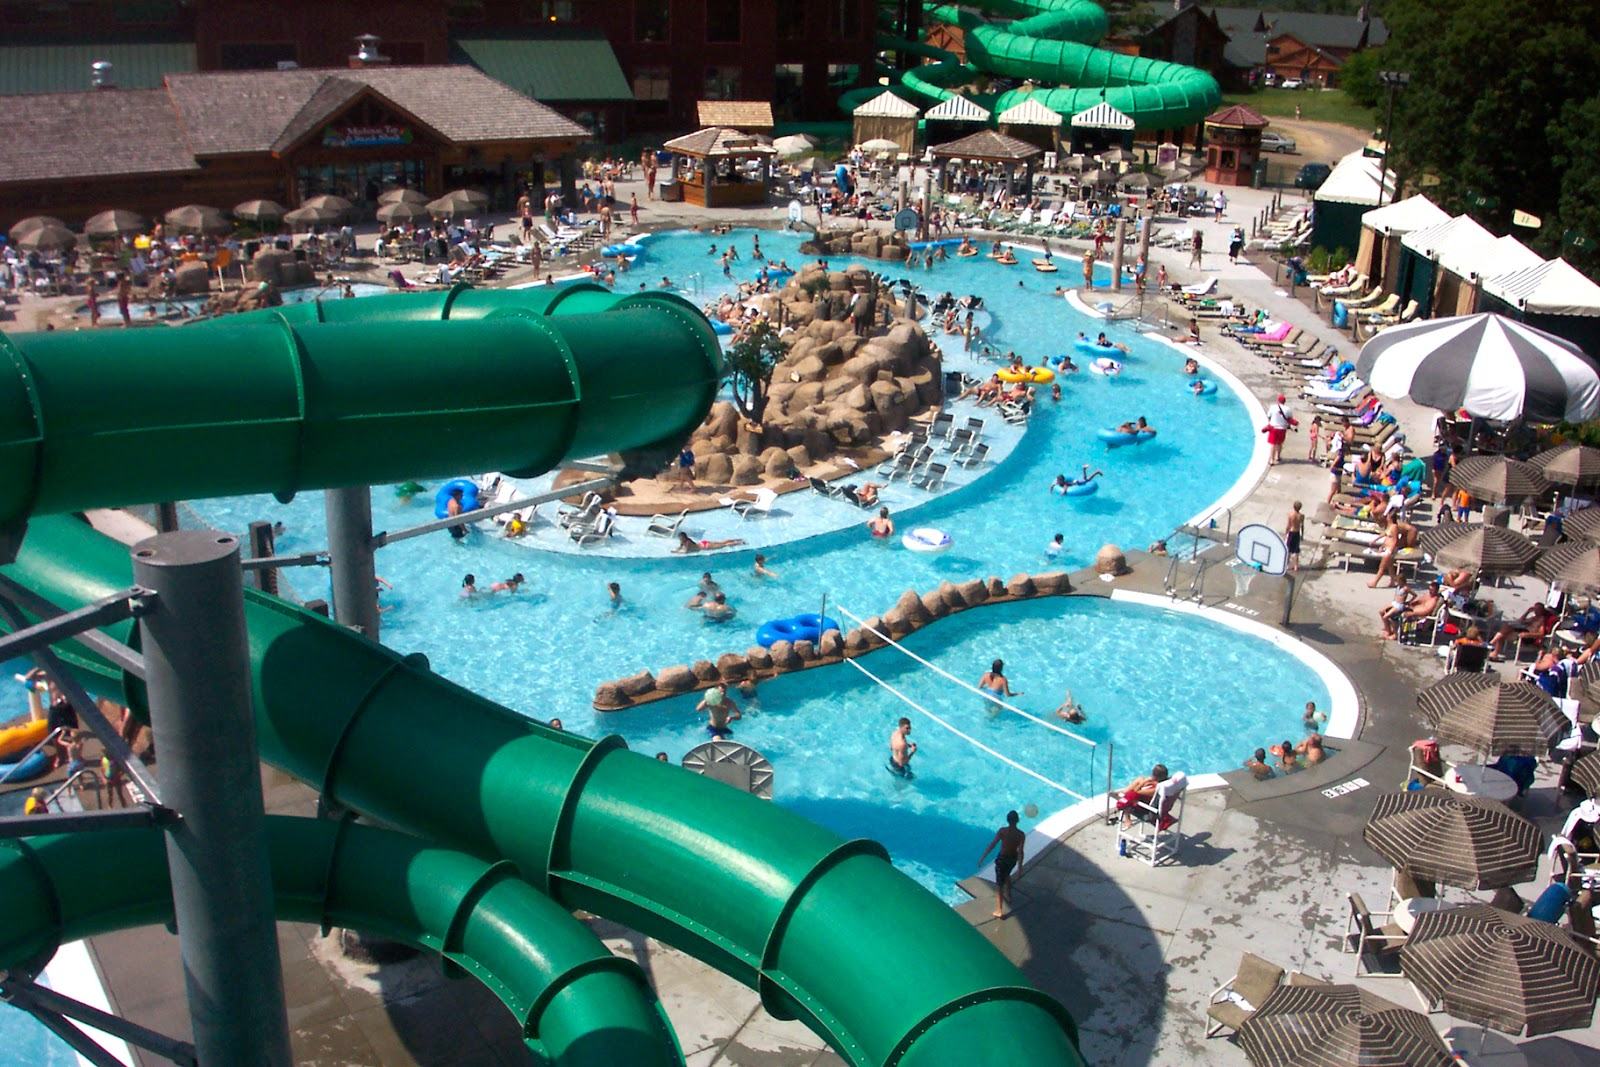 . Top 5 Reasons To Visit The Wilderness Resort in The Wisconsin Dells